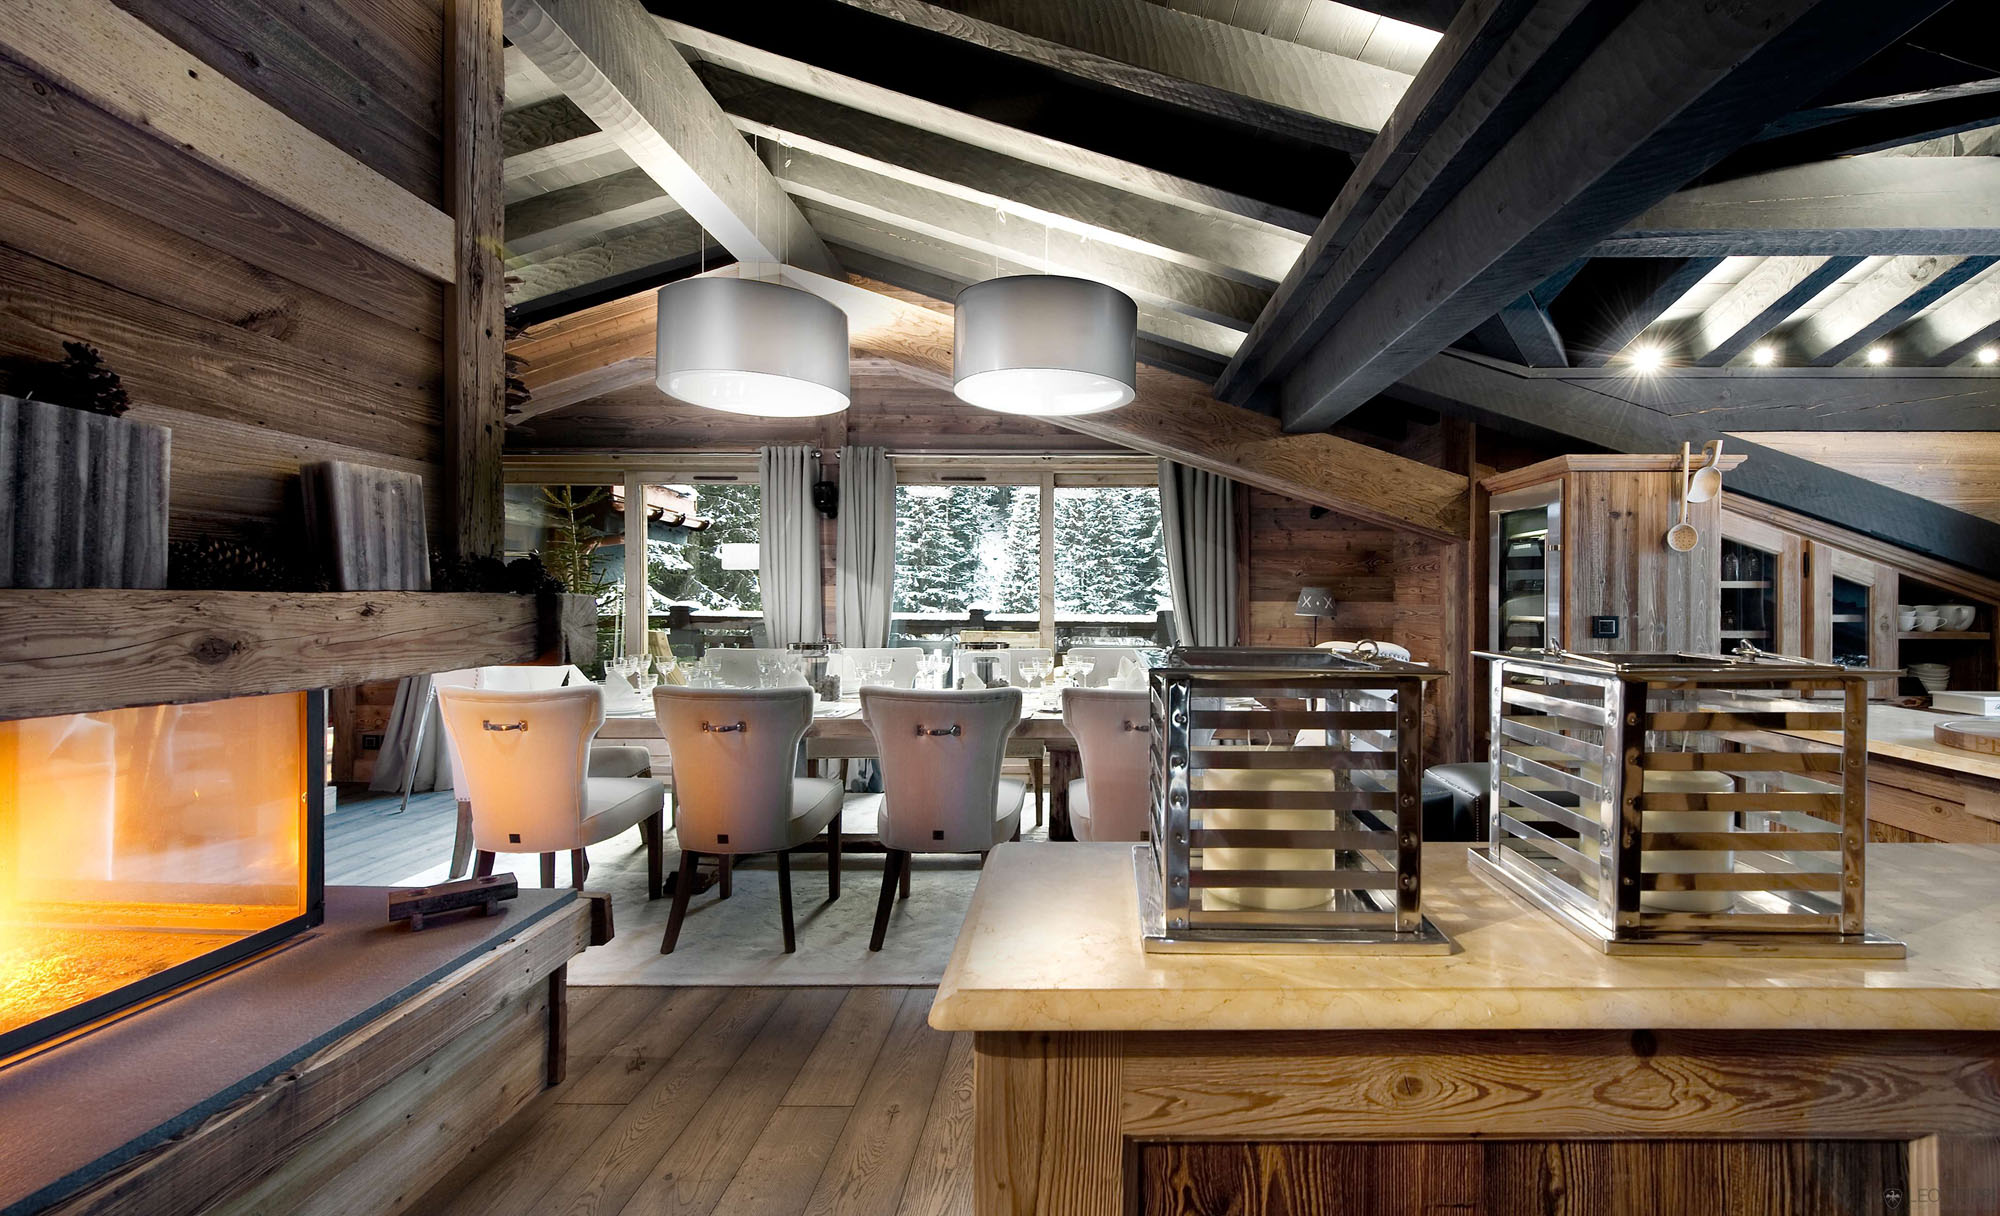 Ski Chalet Interior Design the petit chateau, a luxury ski chalet in courchevel